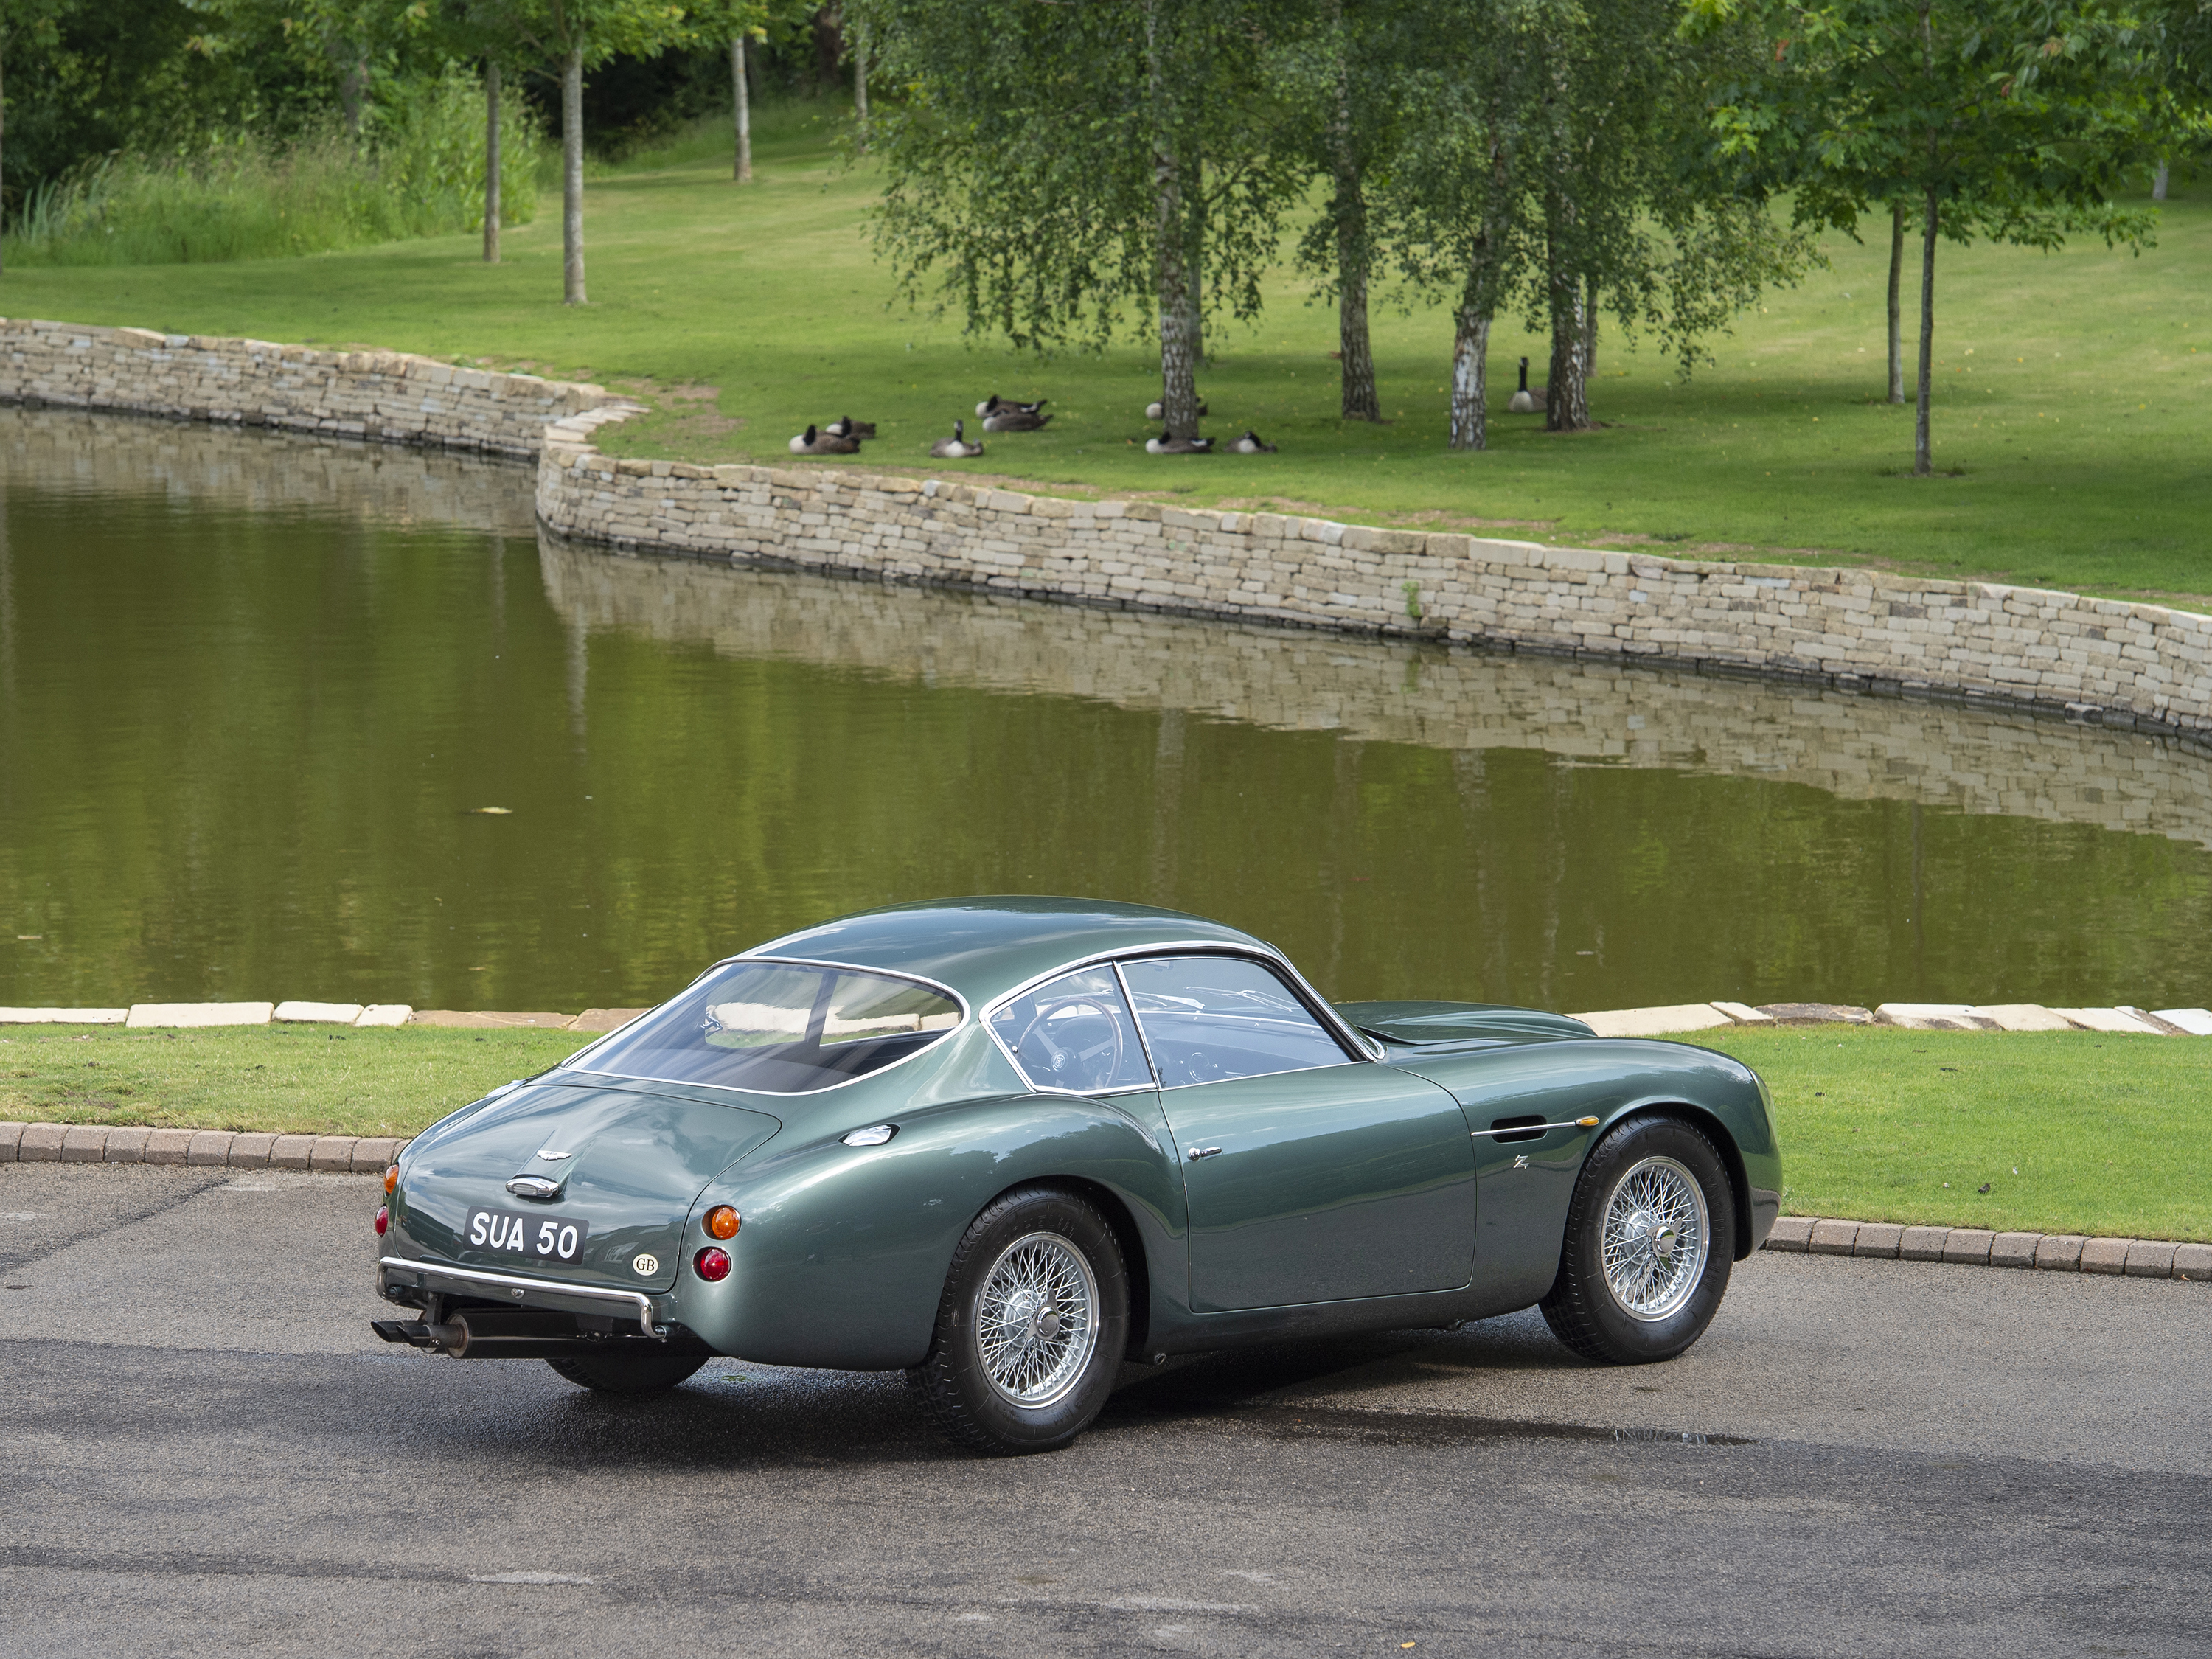 Aston Martin Db4gt Zagato 0181 L Tom Hartley Jnr